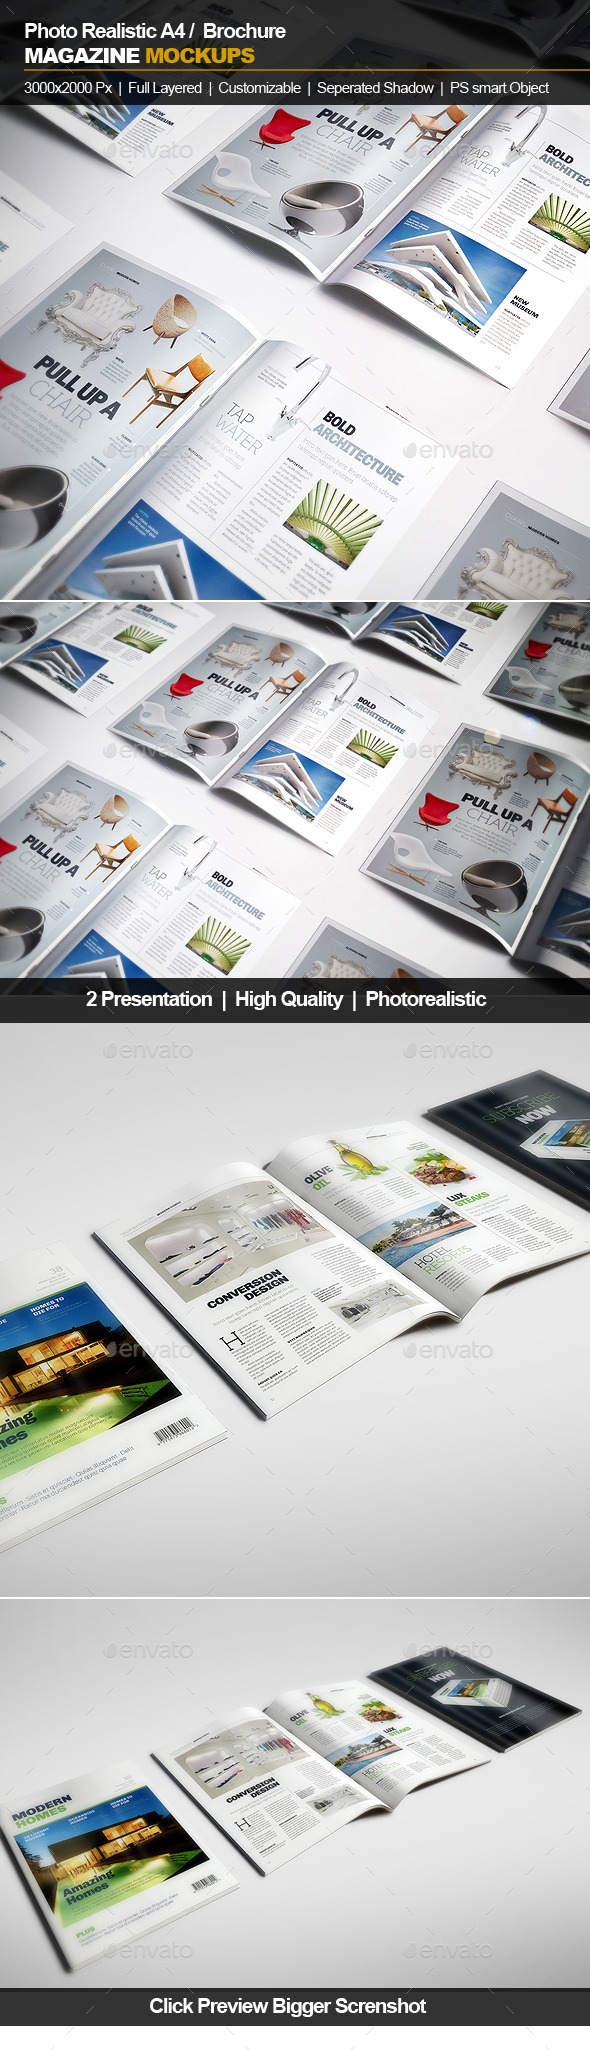 GraphicRiver A4 Brochure Magazine Mockup 11832800